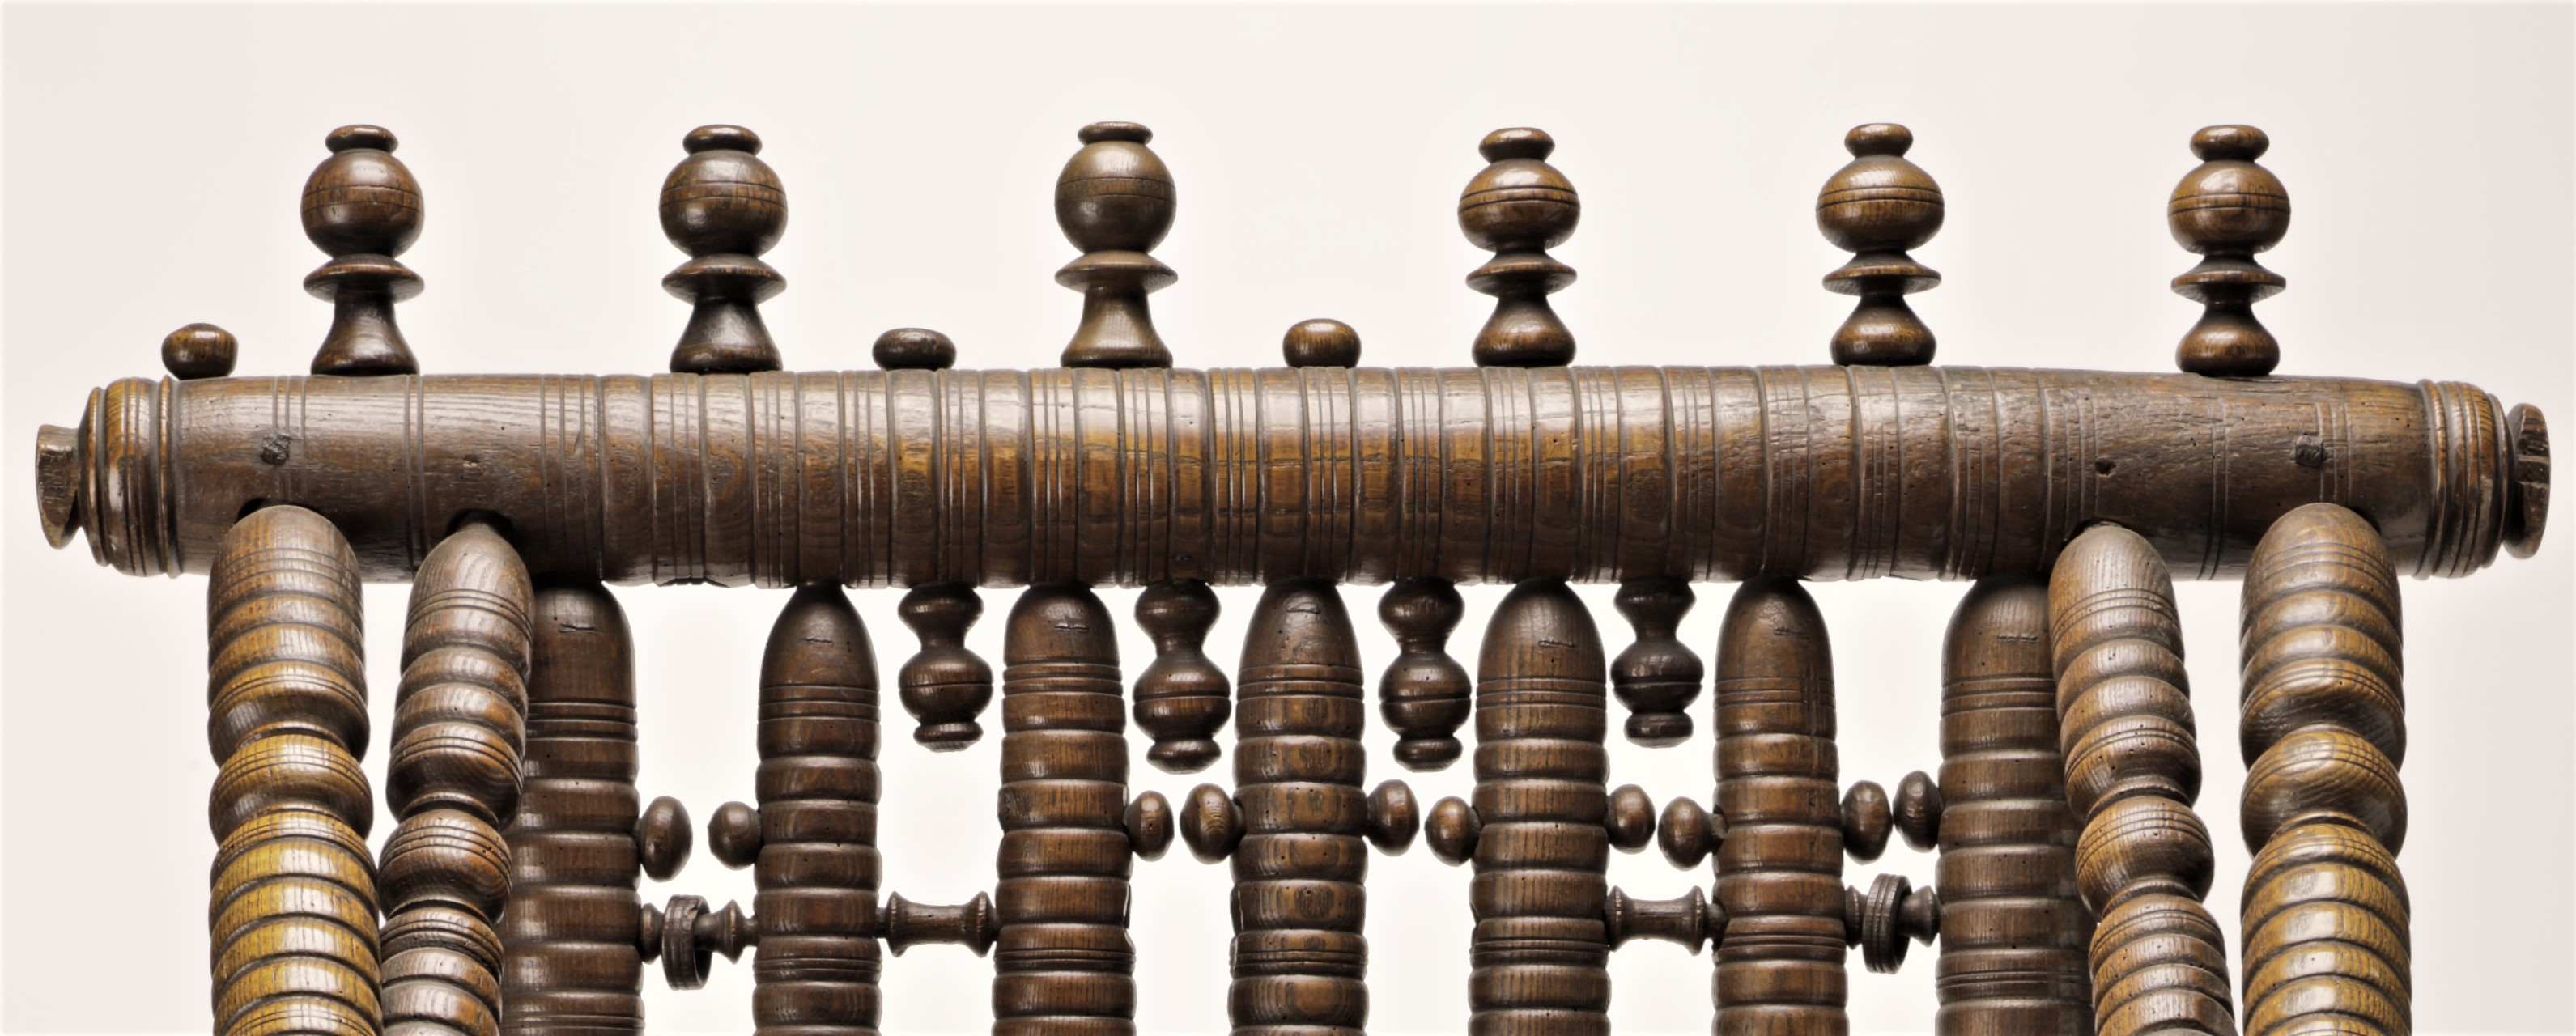 This image of the chair shows a thick horizontal spindle with decorative details at the top, with several pommels of various lengths and widths above and below it. Six vertical spindles are below the large spindle. Between them, small circular and oval shaped knobs are interspersed, as are a few small rods that connect between spindles. Two of those rods have circular wooden rings attached.